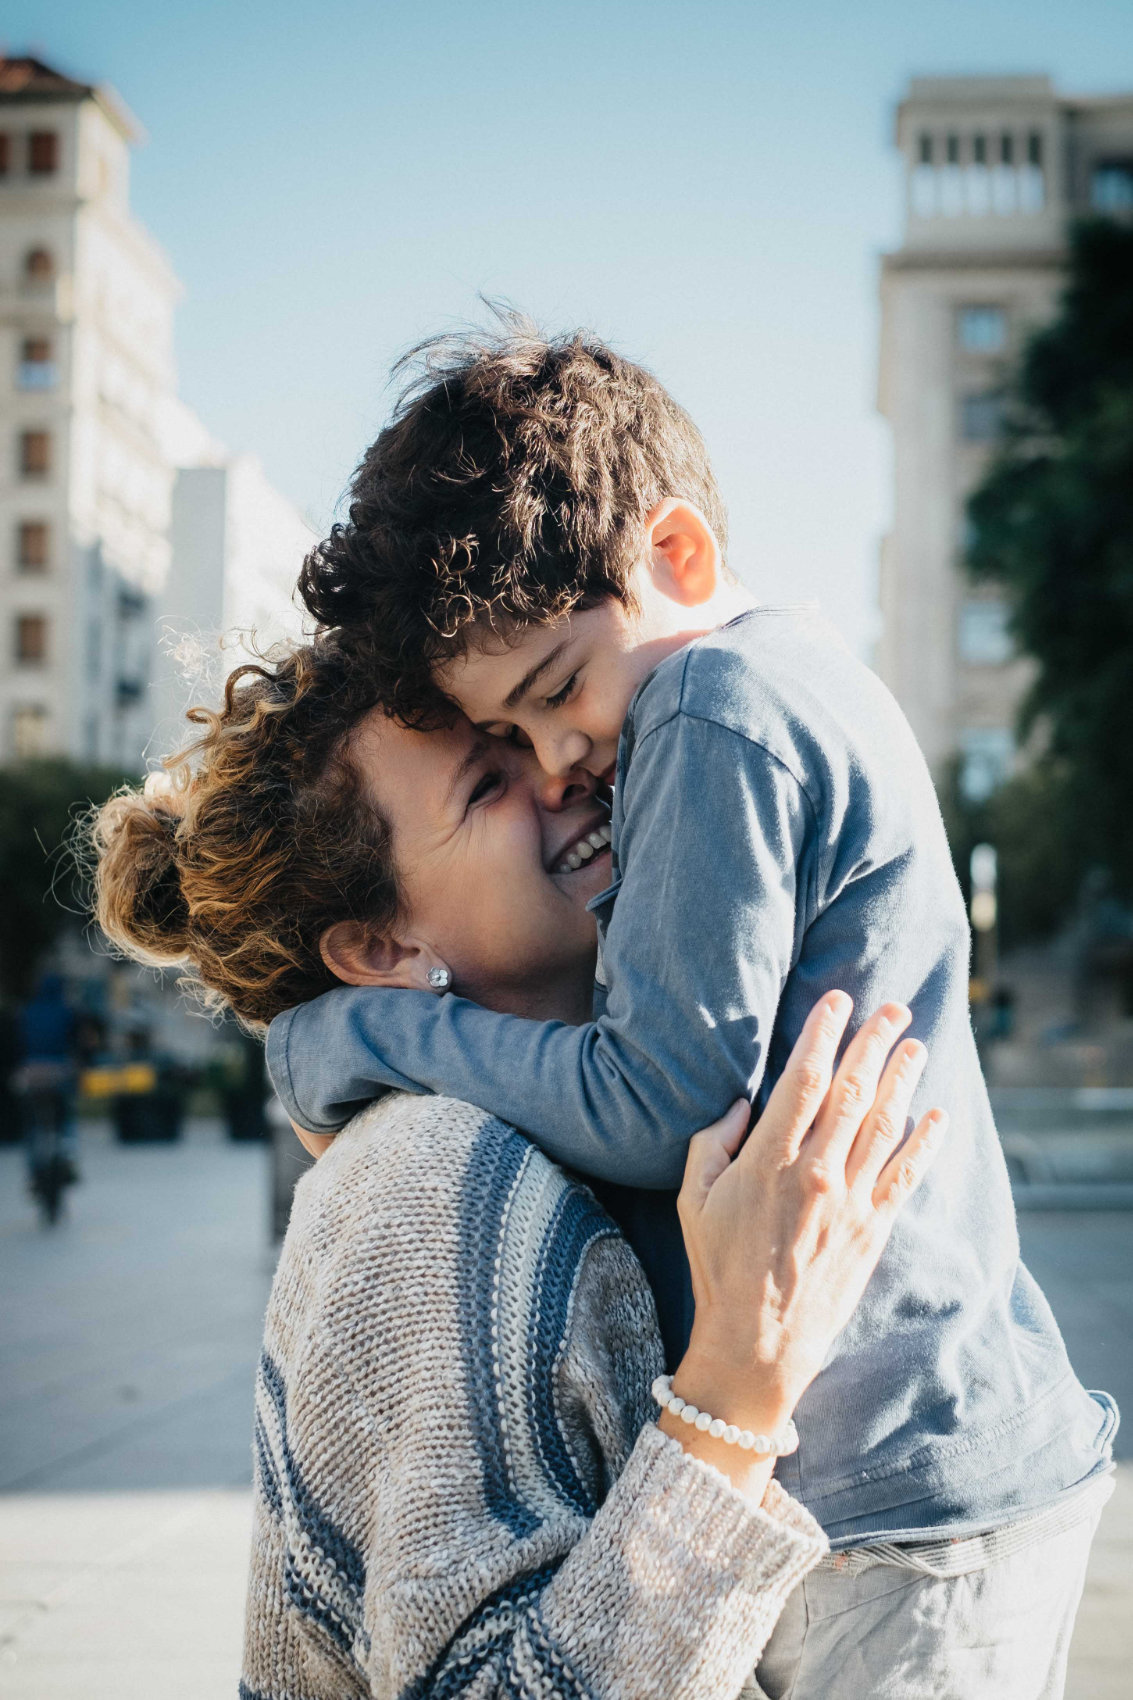 A mother and son in the streets of Barcelona, family picture by Pauline Mattia